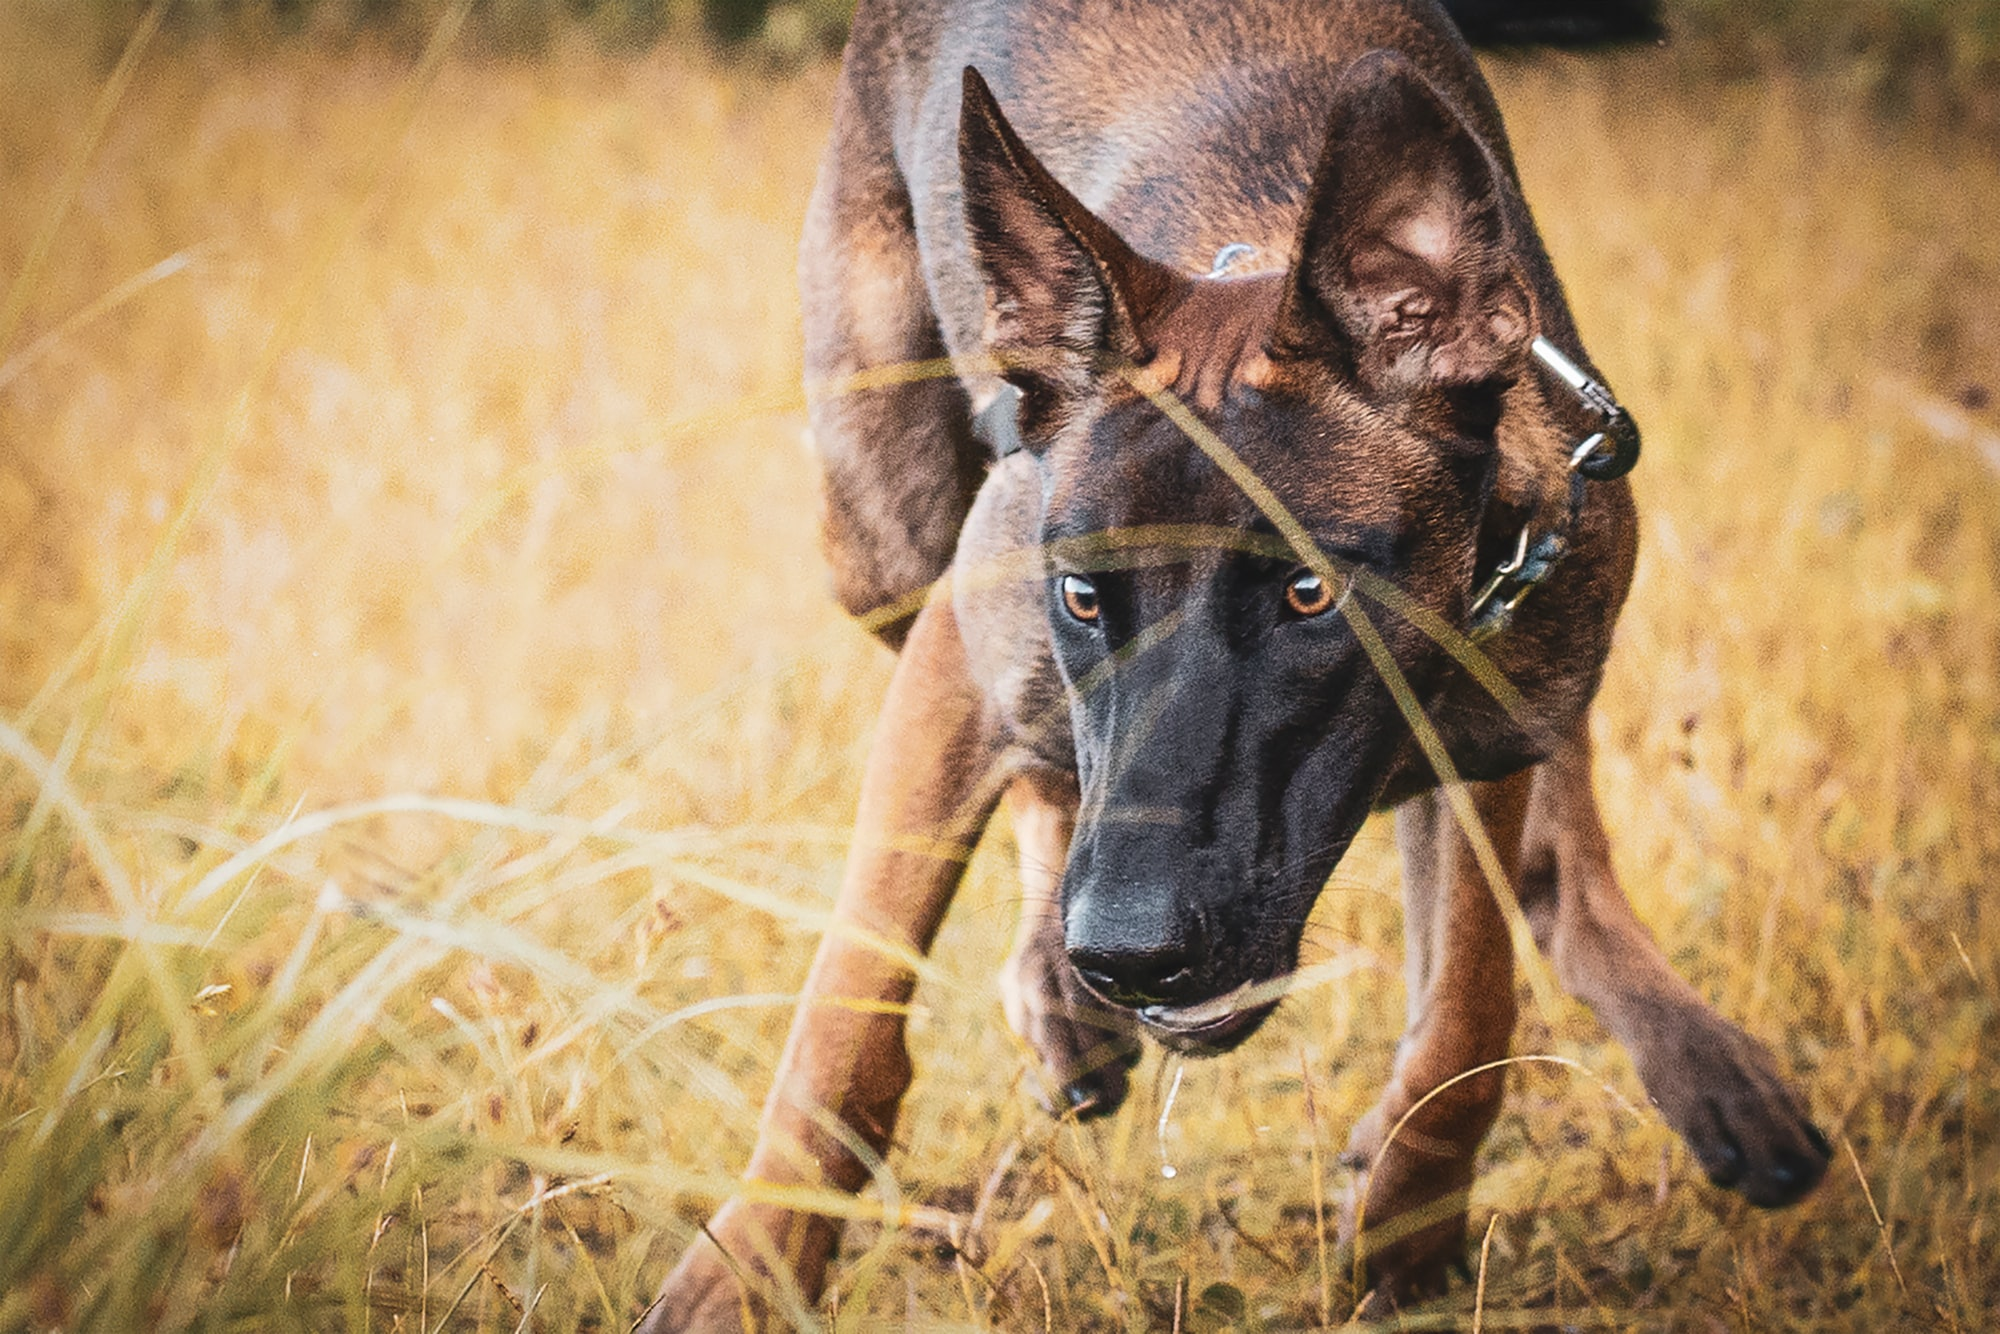 Belgian malinois playing in a field.